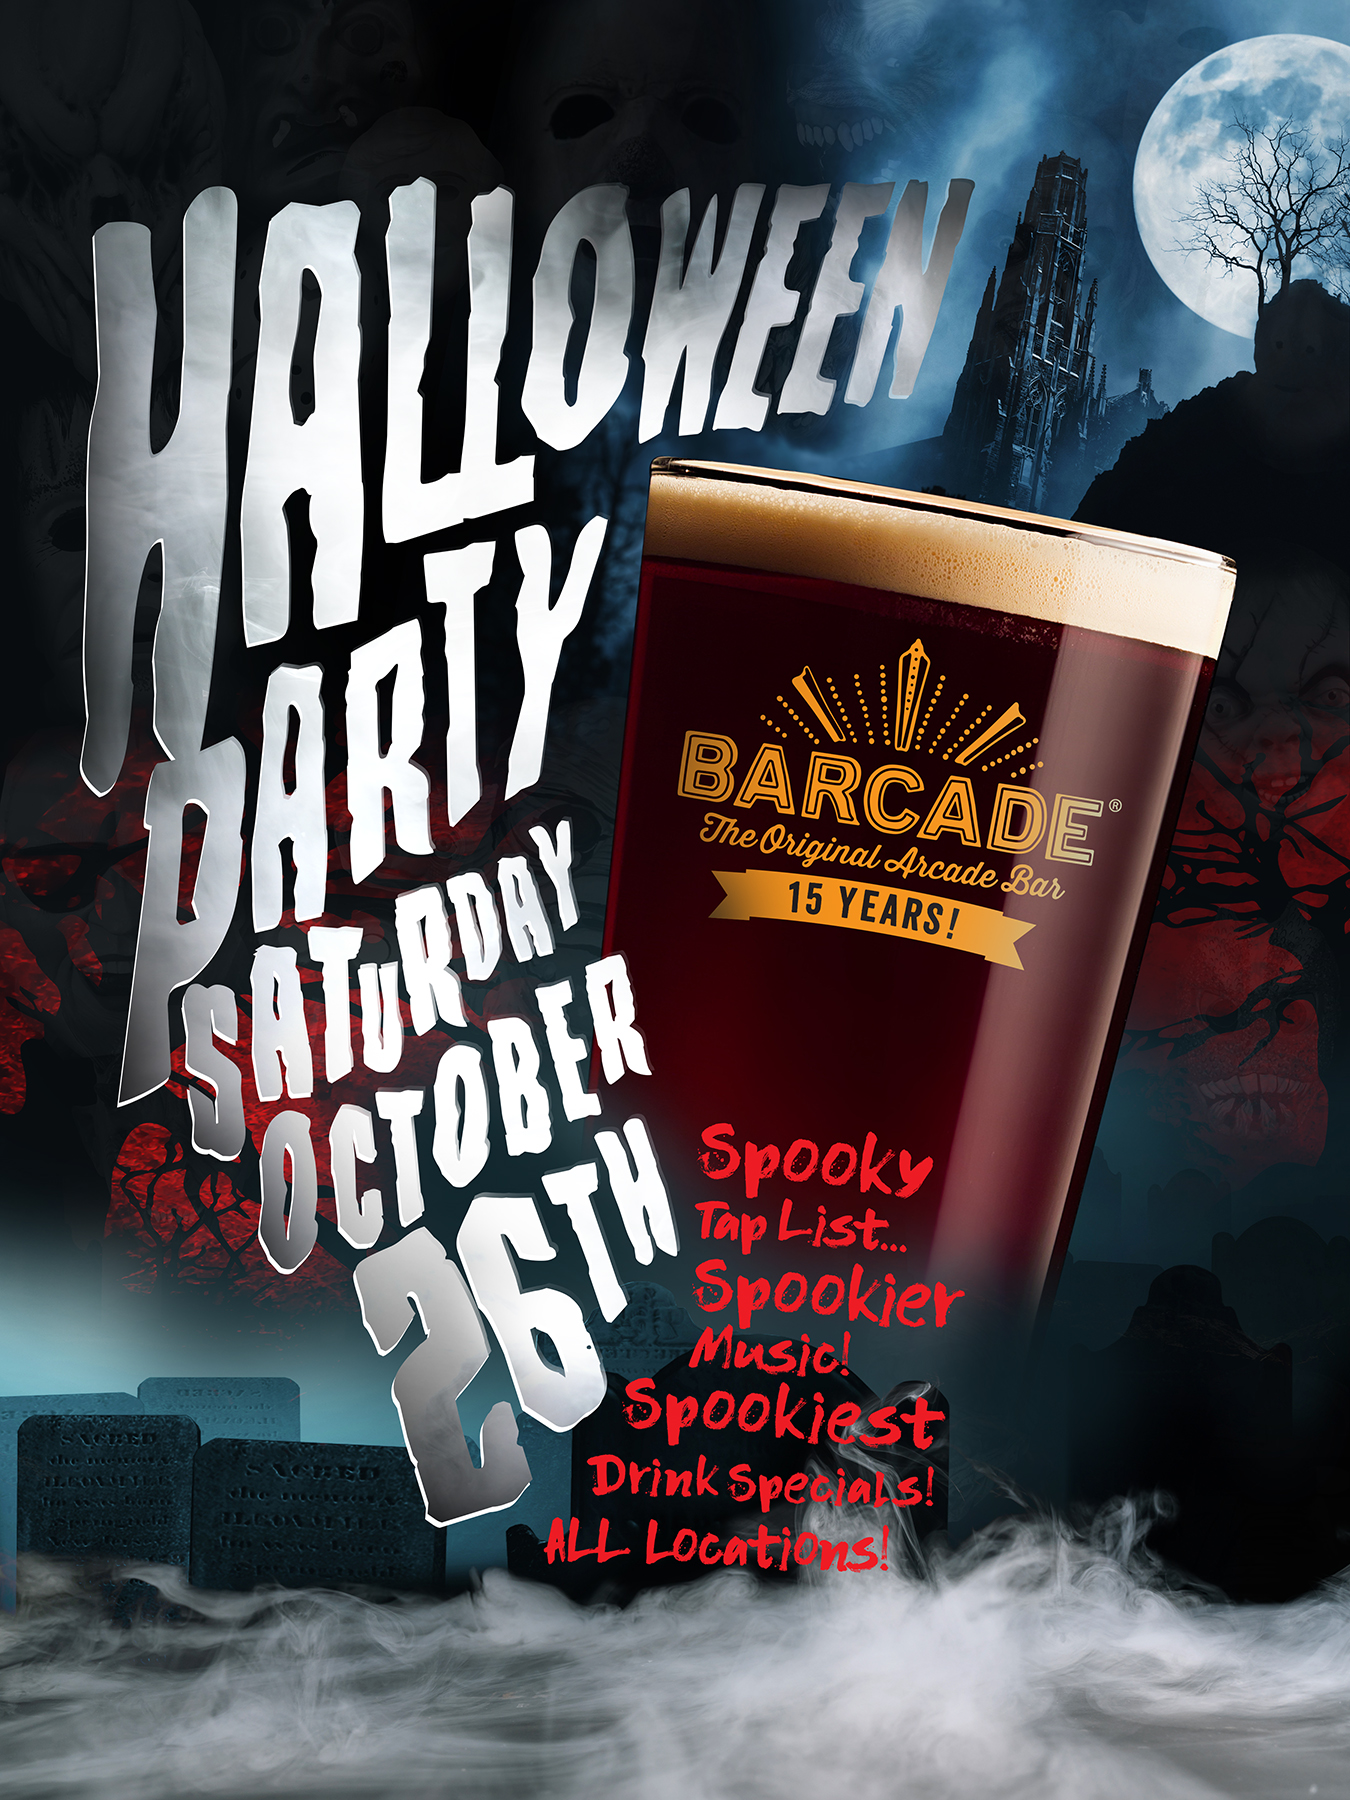 Barcade Halloween — October 26, 2019 at Barcade® in New Haven, Connecticut | poster